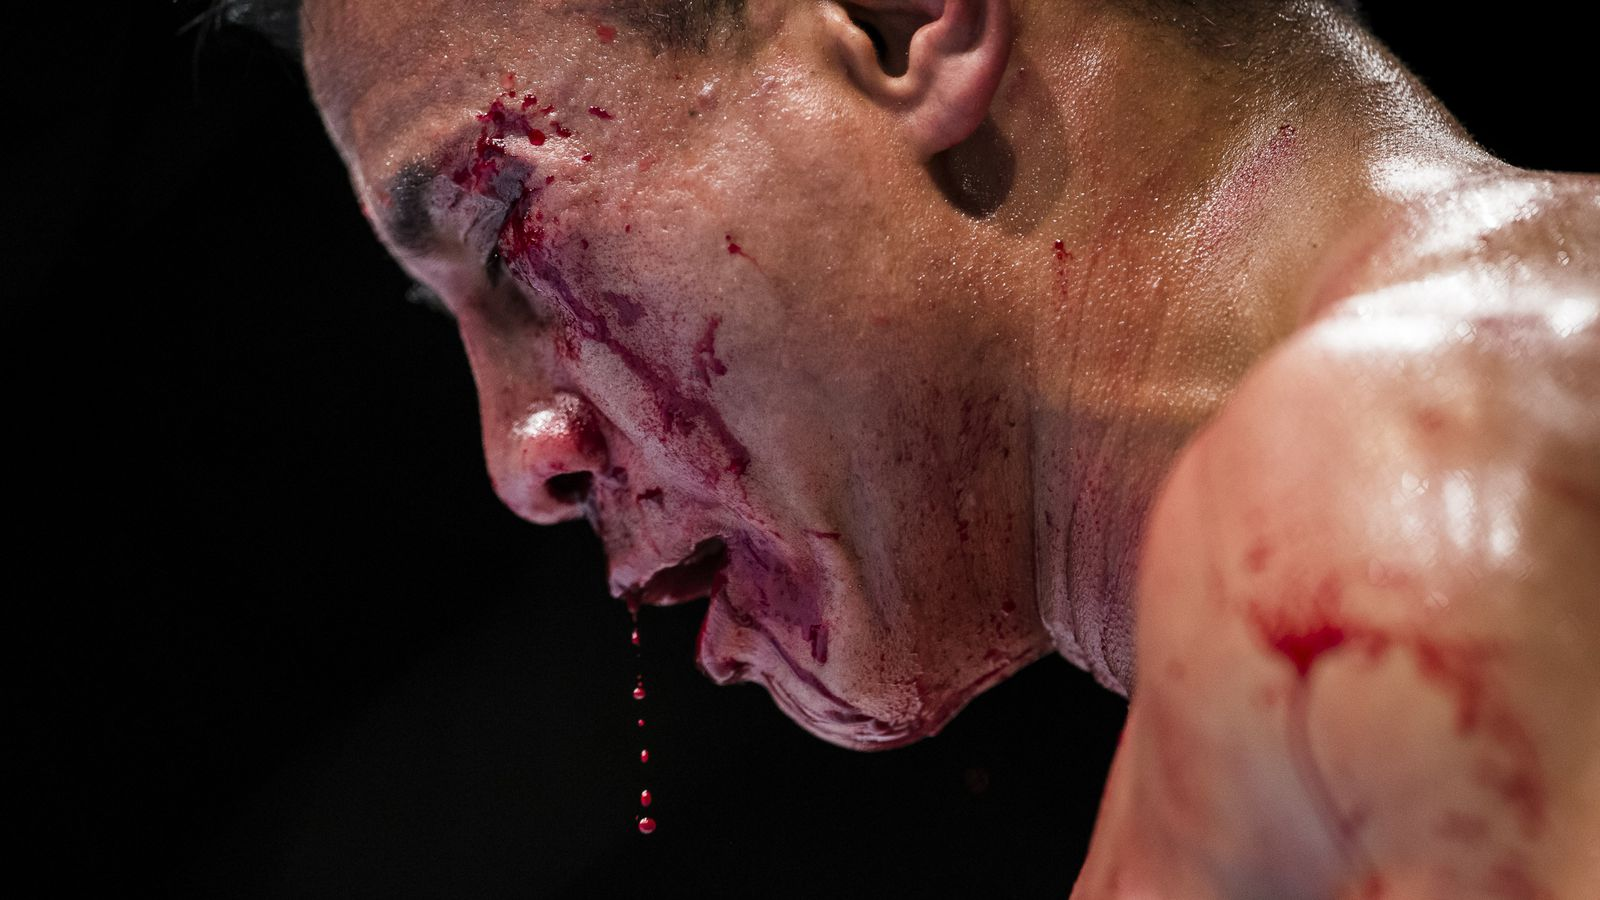 Top scientist says to ignore Cung Le's HGH test result - Bloody Elbow